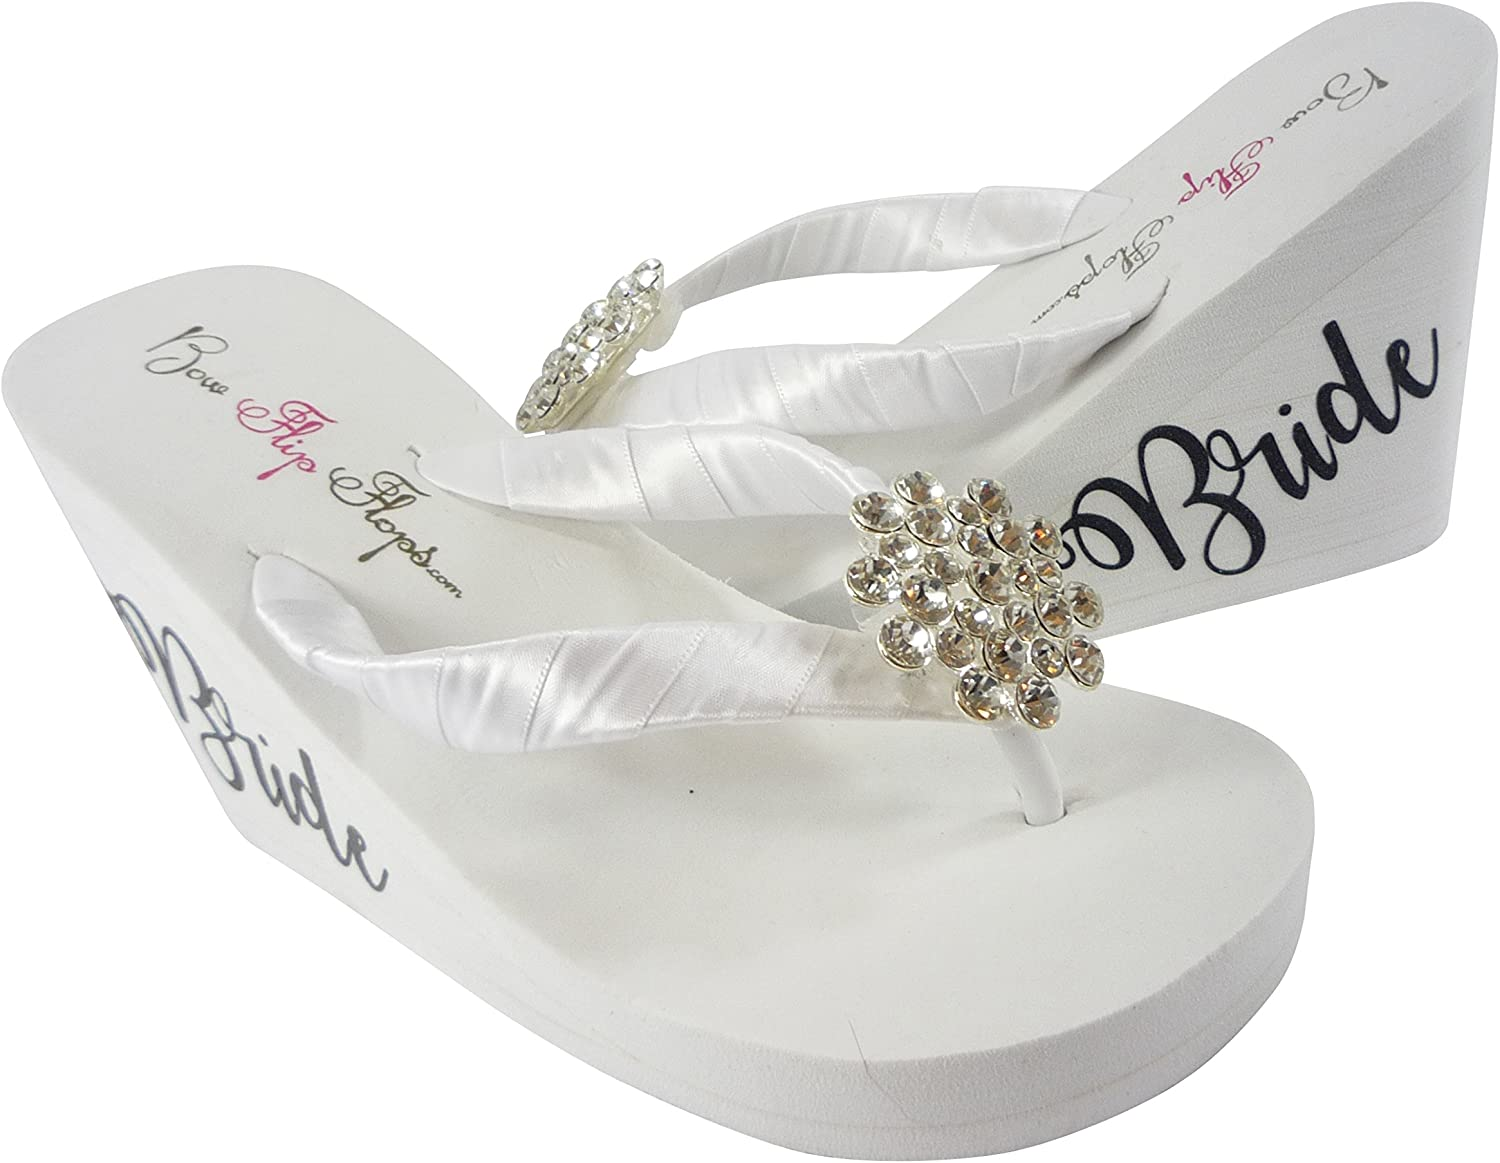 Fancy Bride High Wedge Flip Flops with Jewel Embellishment